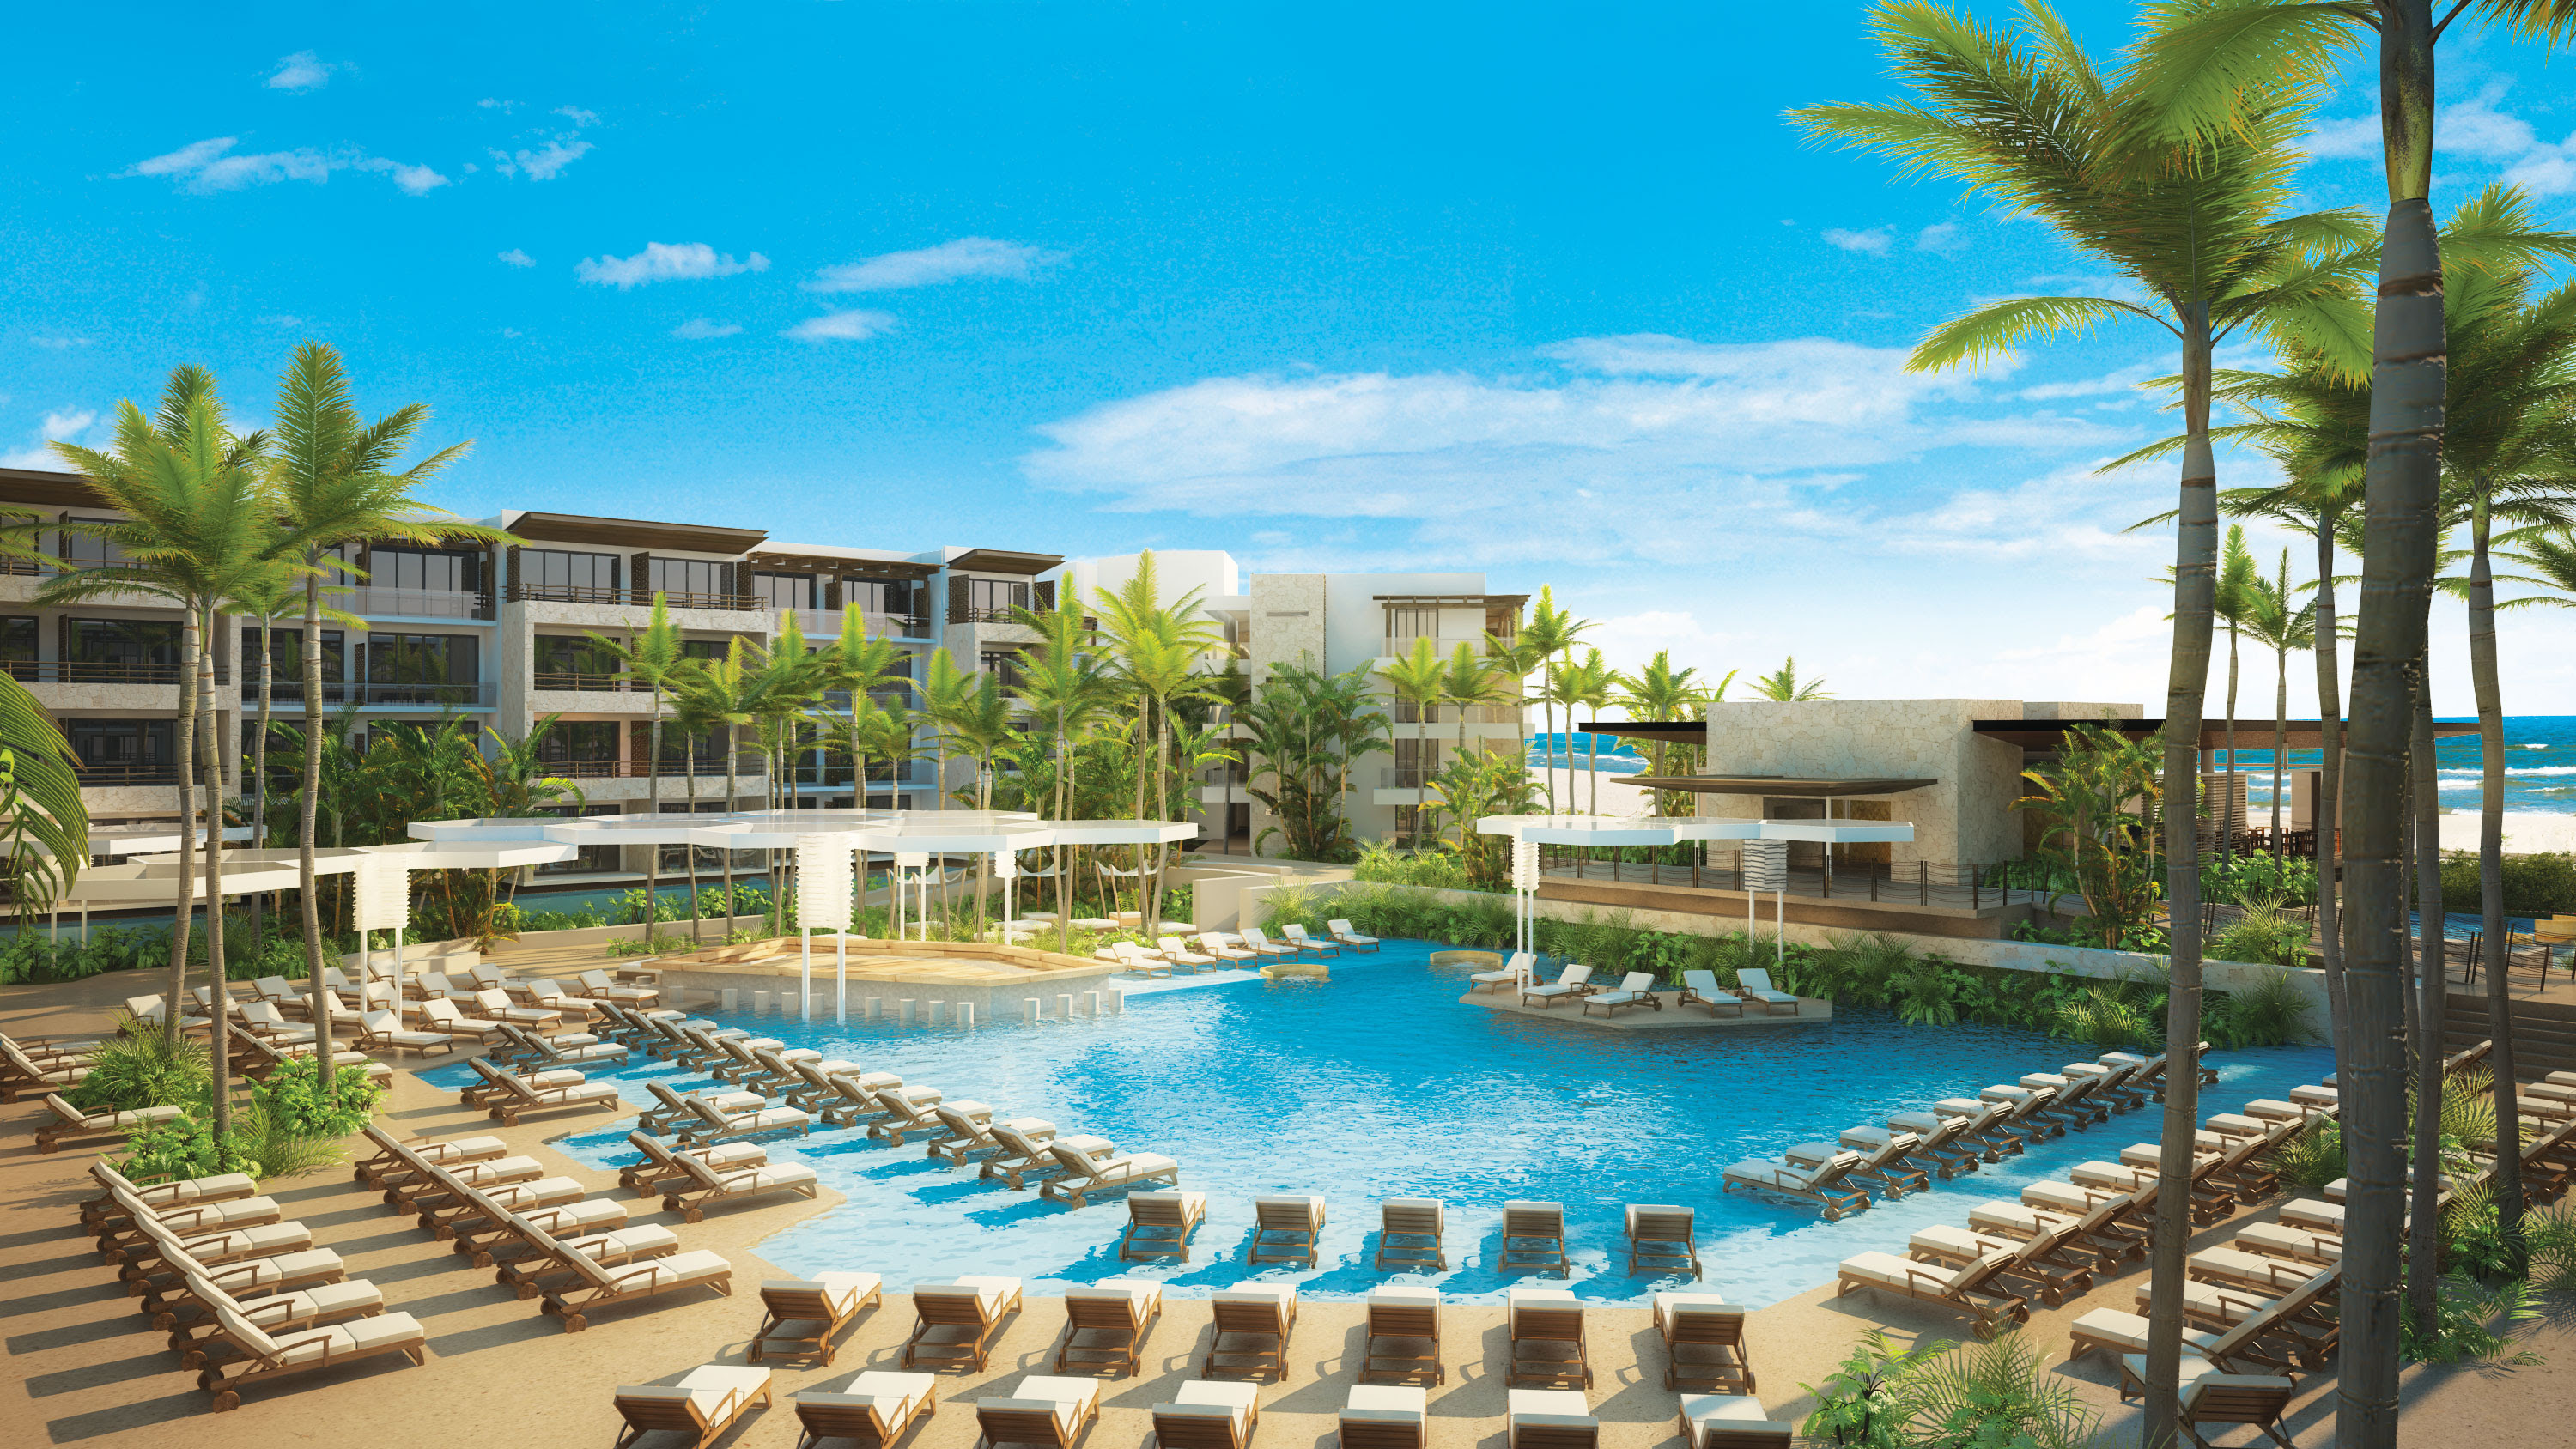 New Royalton AllIn LuxuryTM Resort to Open in Riviera